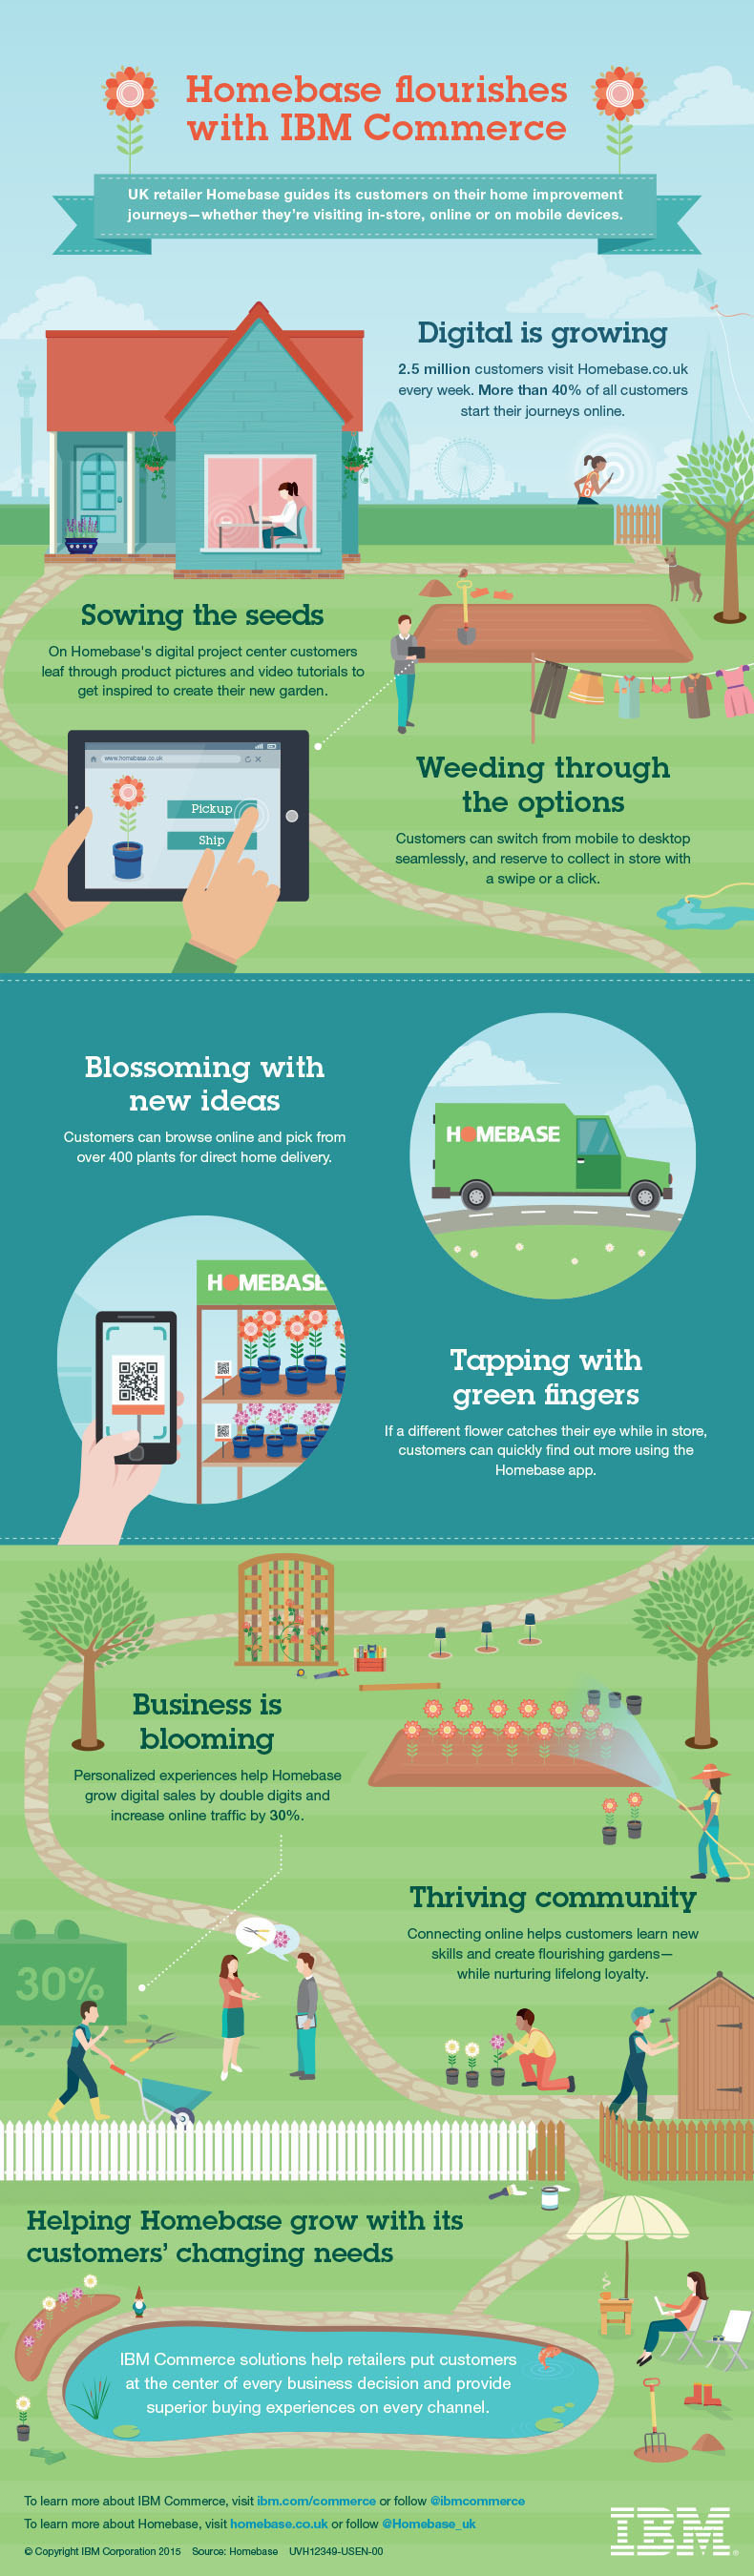 This infographic shows how UK home and garden retailer Homebase guides its customers on their home improvement journeys by using IBM Commerce solutions to help personalize the customer experience.